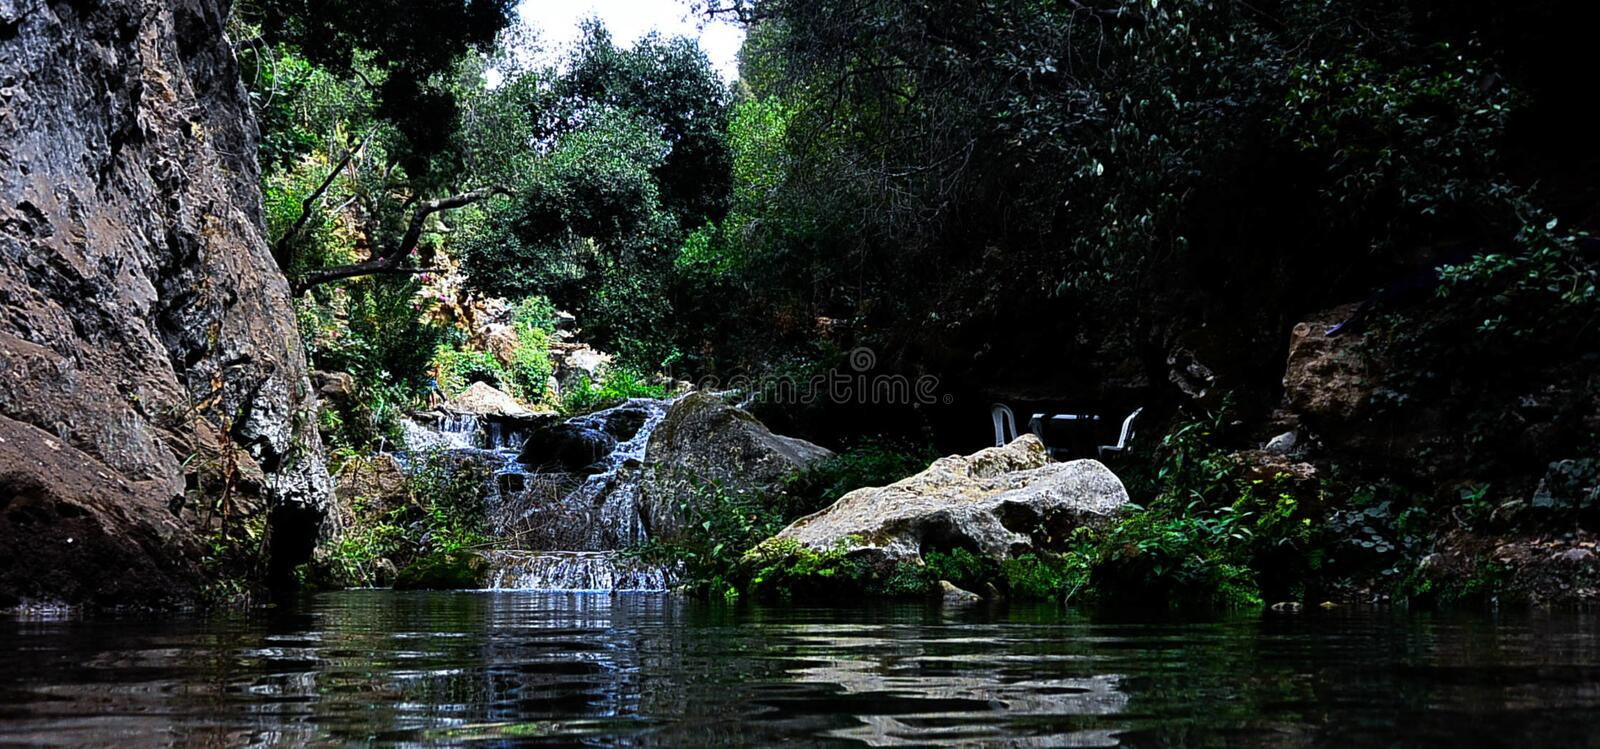 River Surrounded by Rocks and Trees royalty free stock images